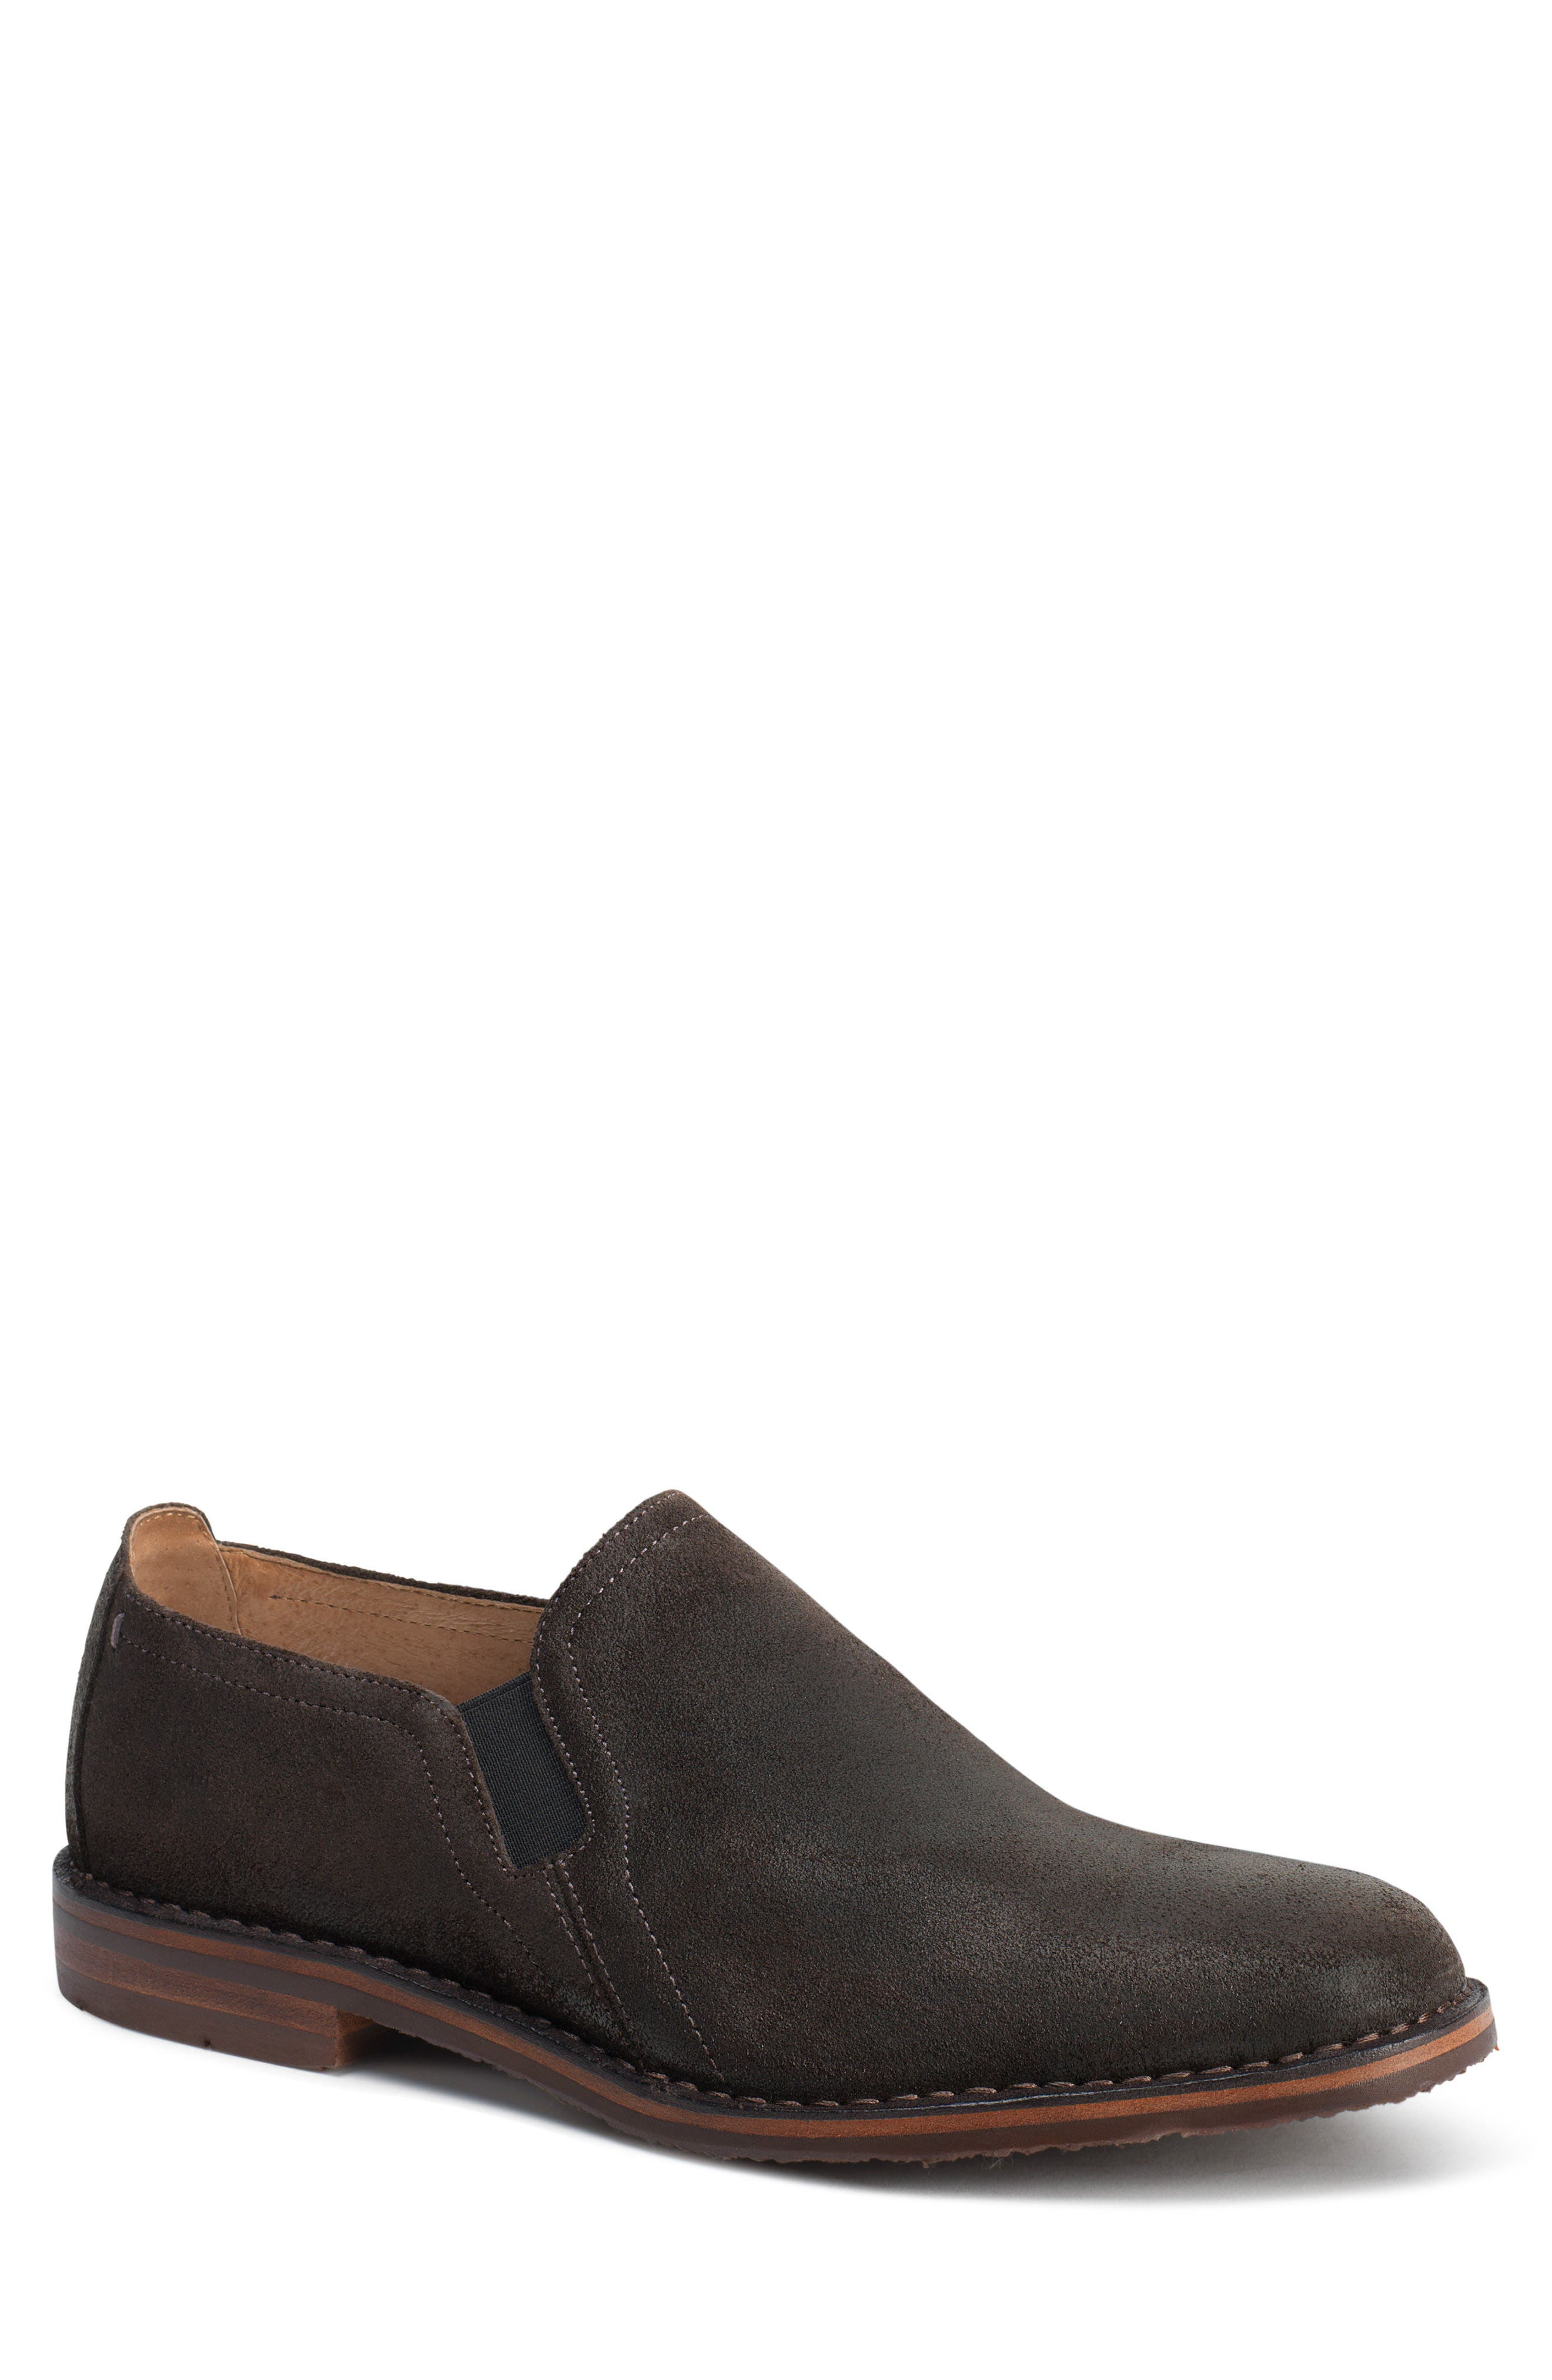 'Blaine' Venetian Loafer,                         Main,                         color, Gray Waxed Suede